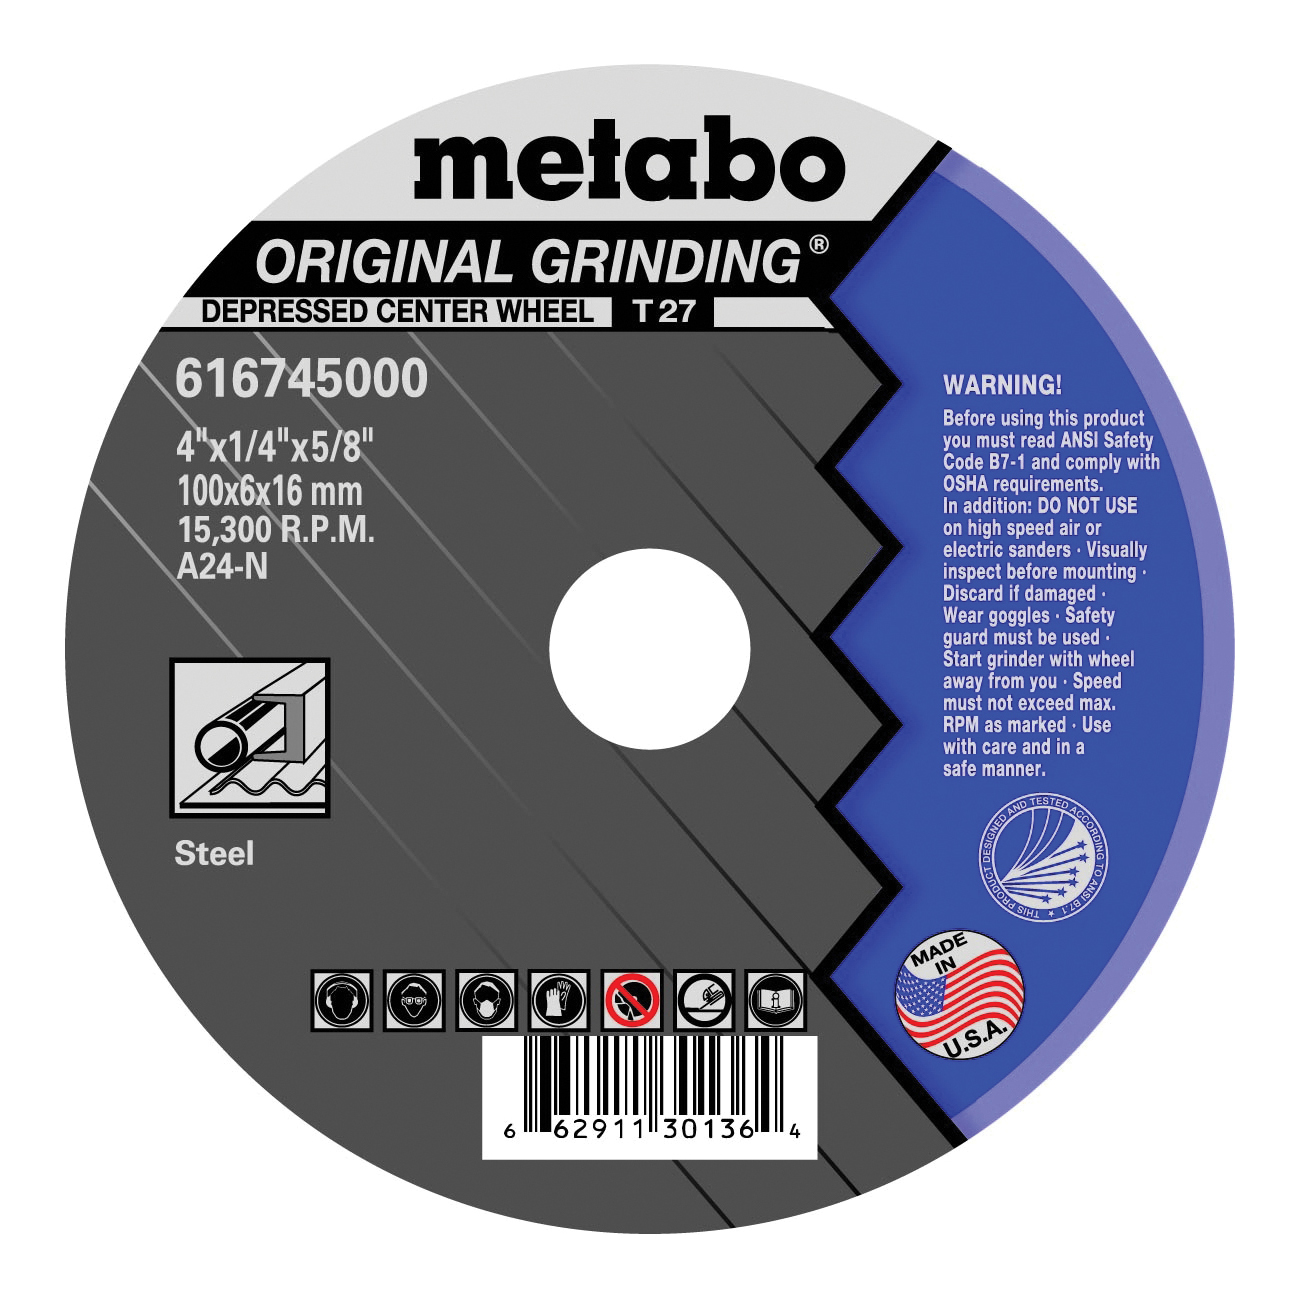 metabo® Flexiamant 616745000 Original Grinding® General Purpose Depressed Center Wheel, 4 in Dia x 1/4 in THK, 5/8 in Center Hole, A24N Grit, Aluminum Oxide Abrasive